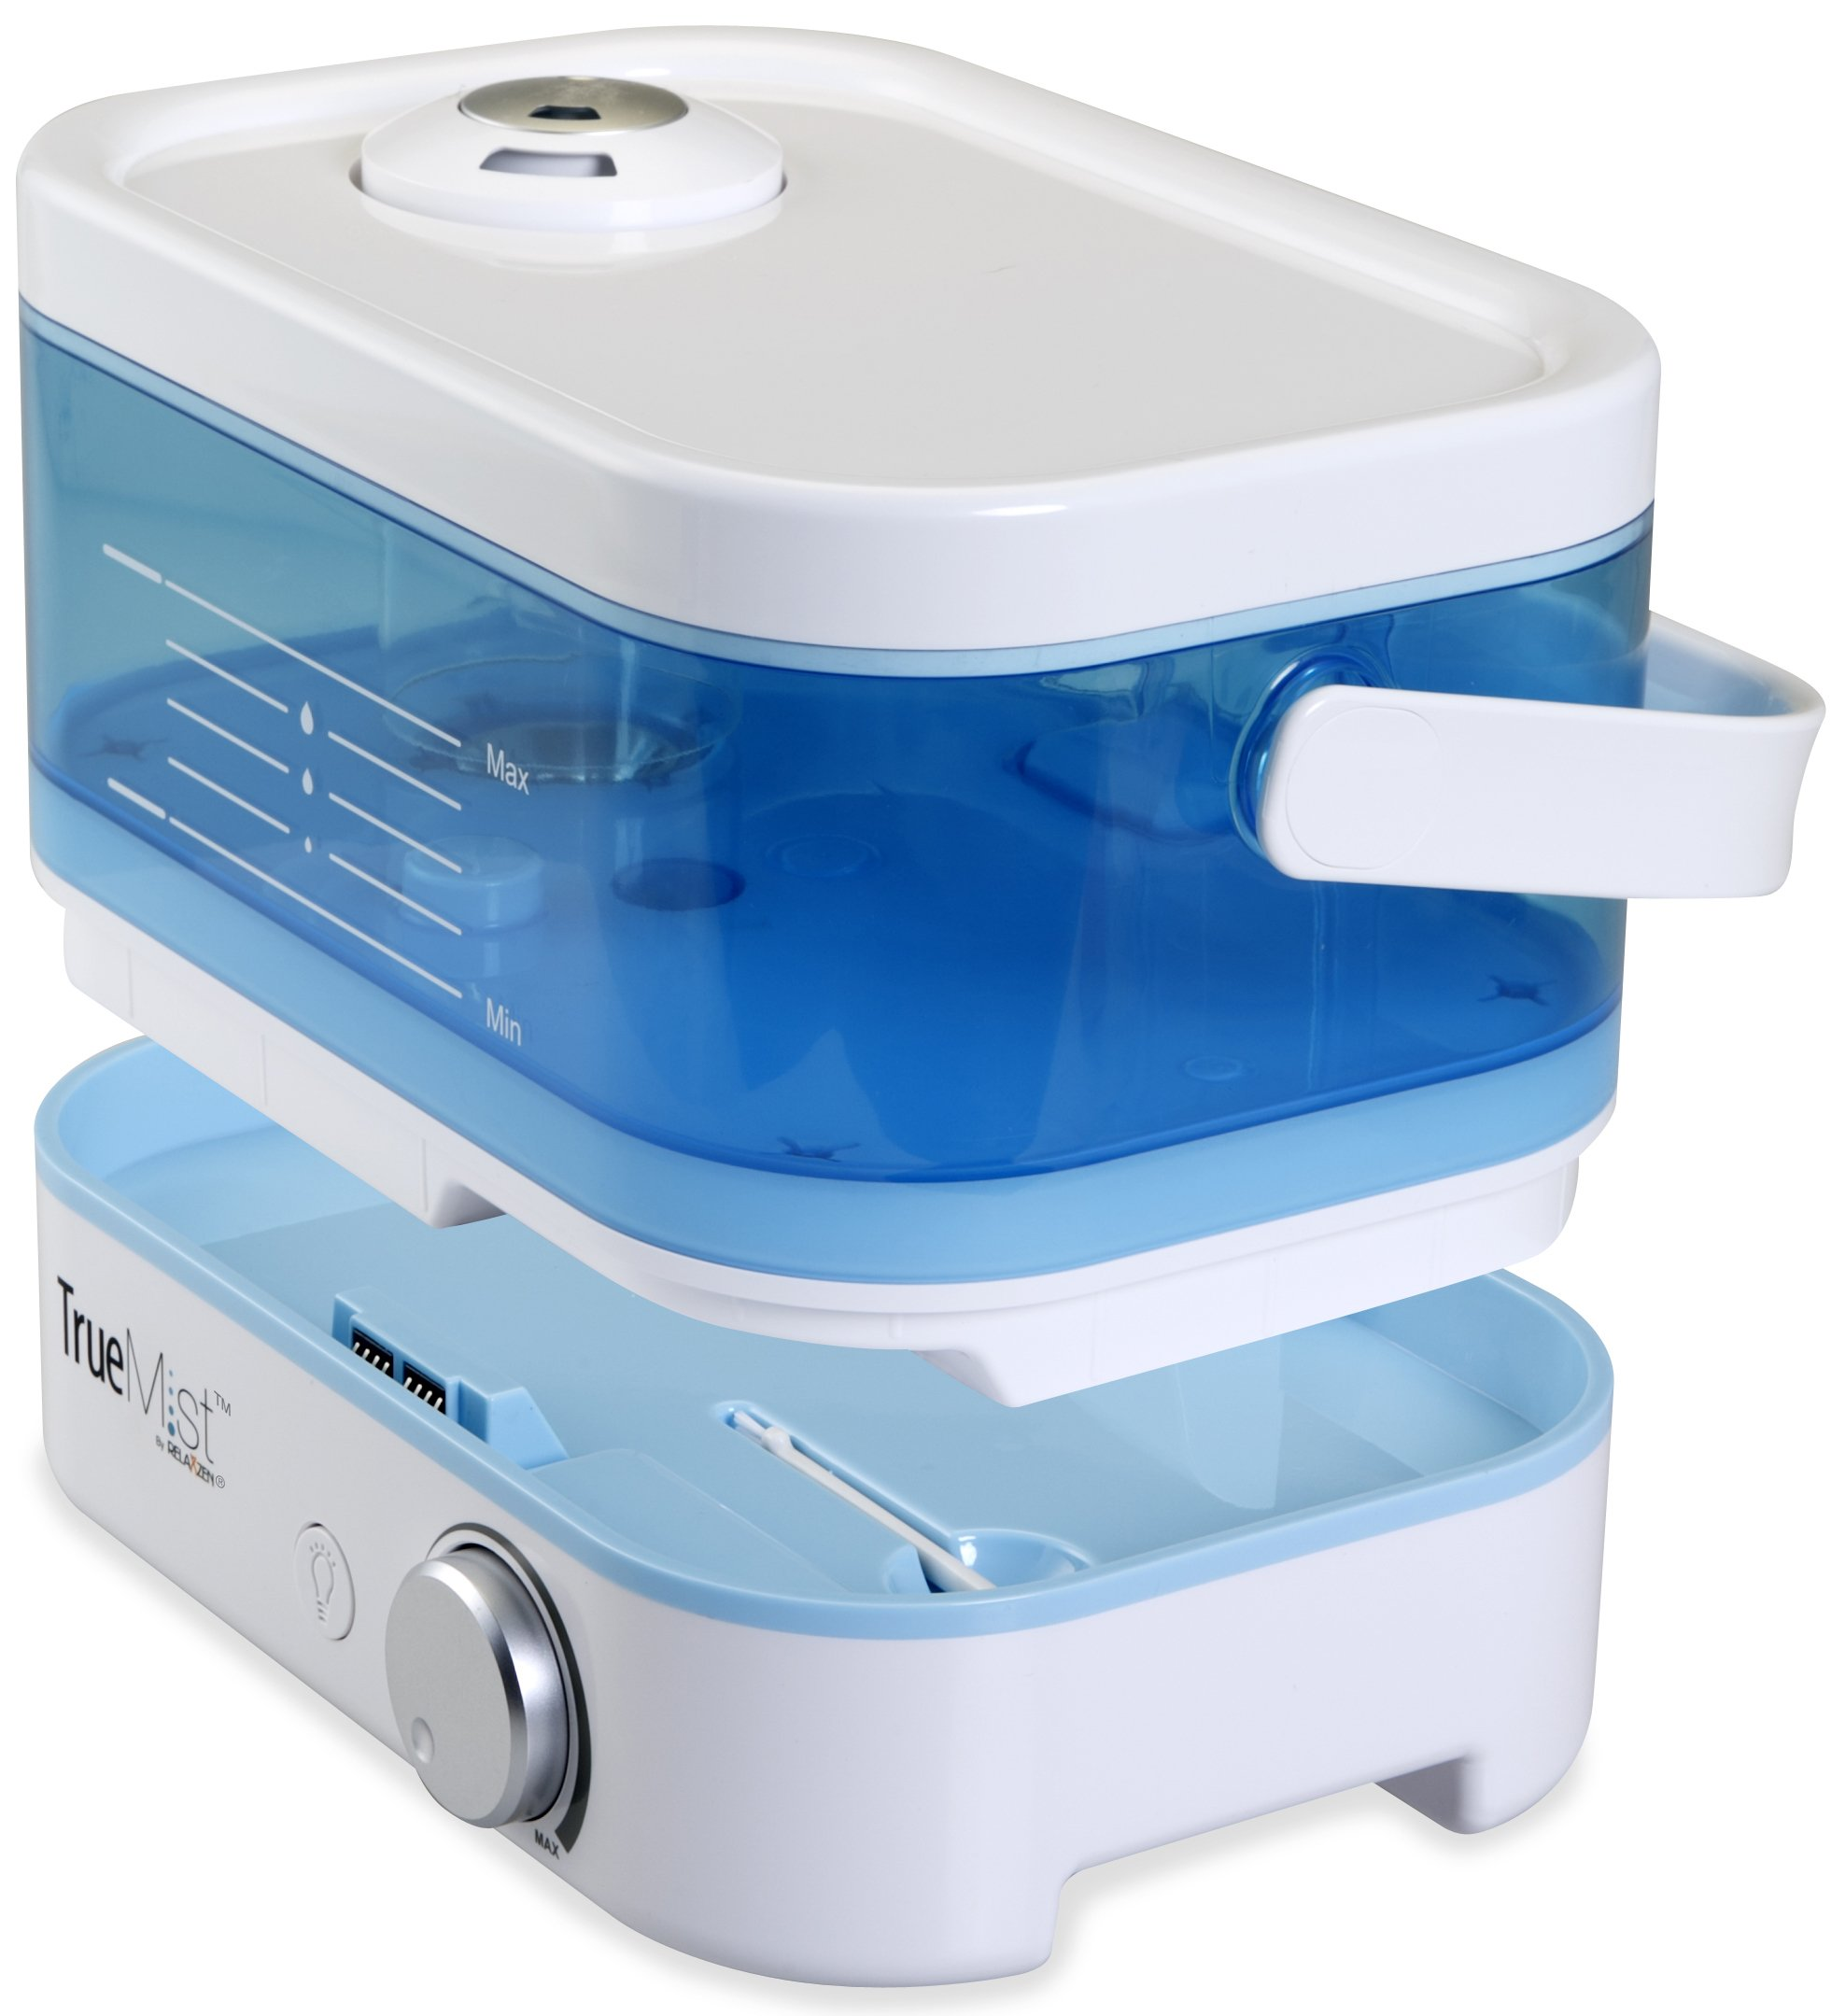 TrueMist Top Fill Cool Mist Humidifier – Easy Clean, Easy Fill, No Mess, White/Blue by TrueMist (Image #7)